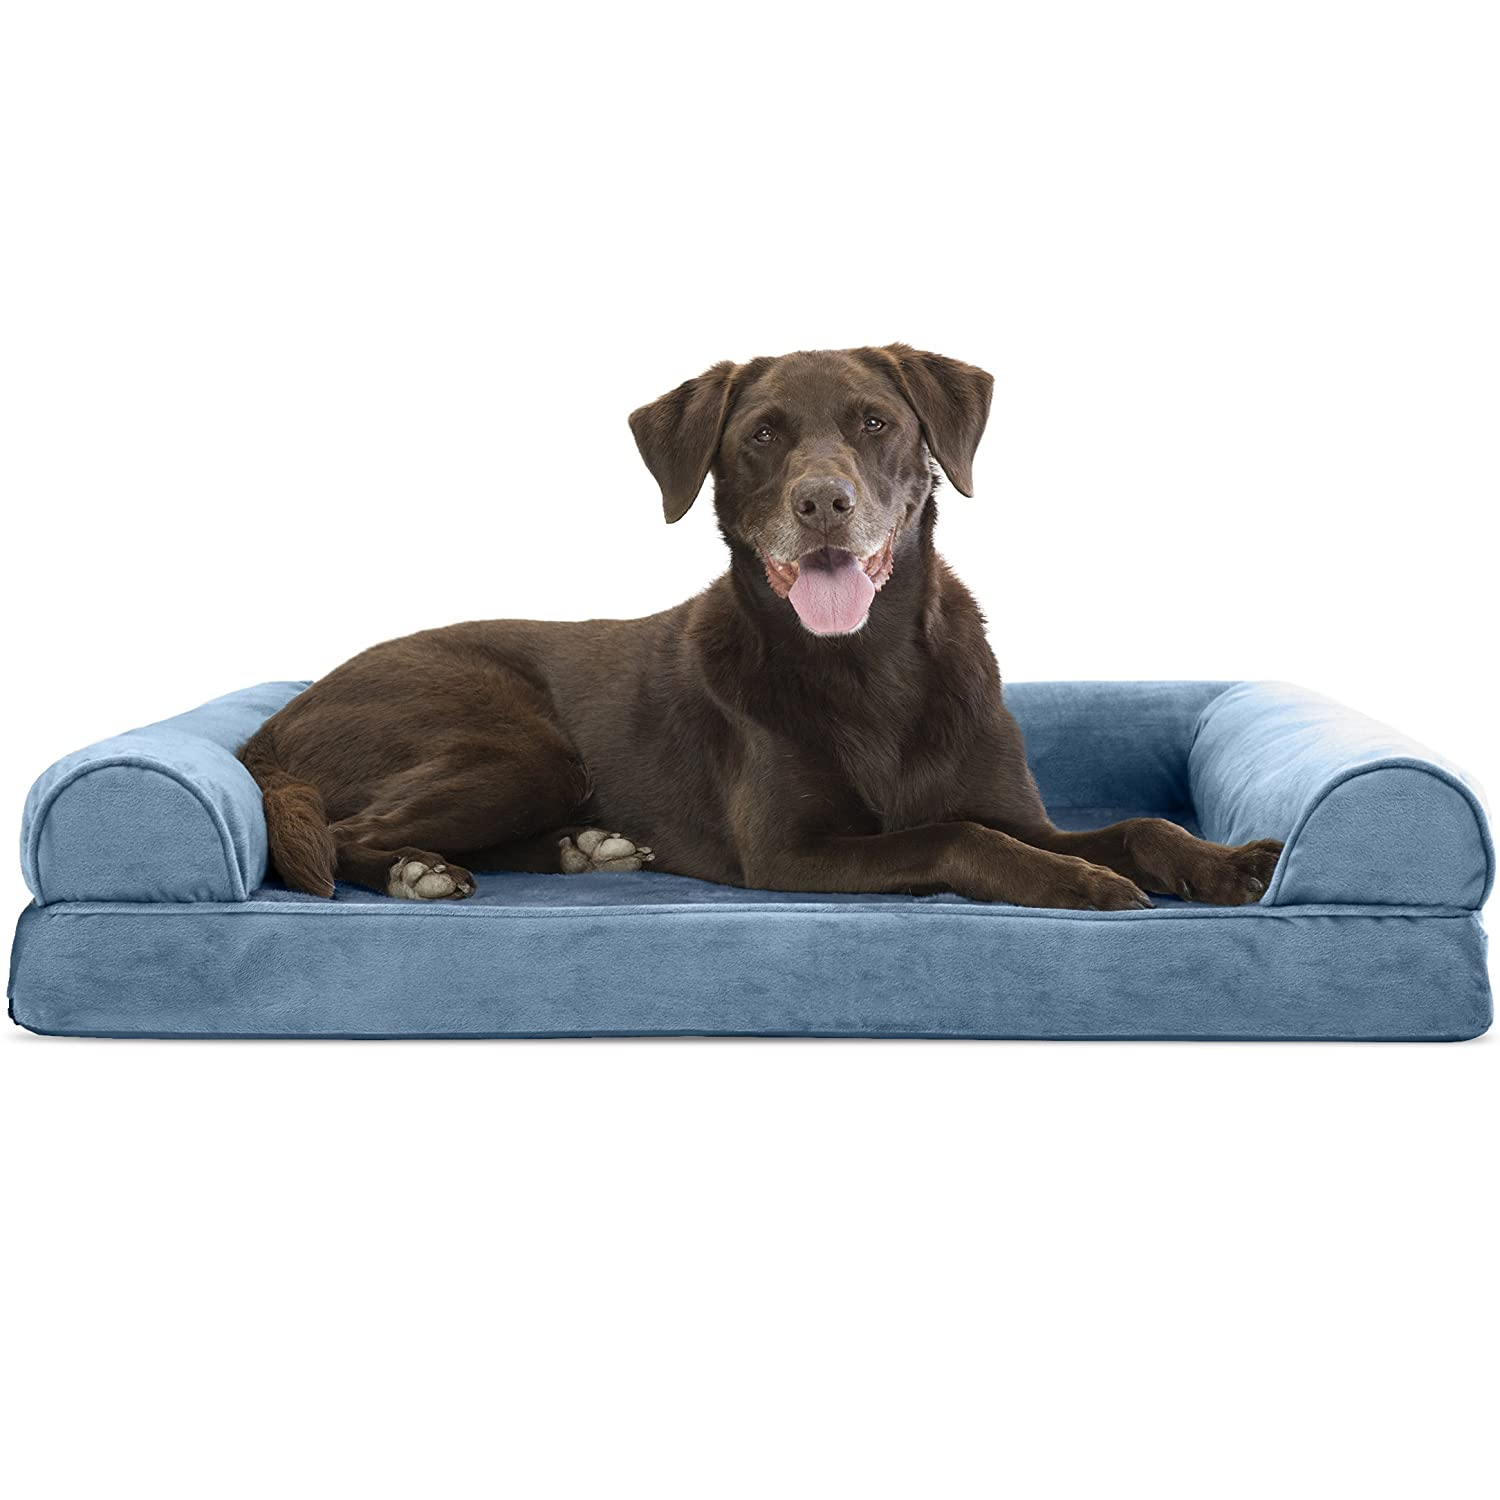 FurHaven Pet Dog Bed   Orthopedic Faux Fleece & Chenille Sofa-Style Couch Pet Bed for Dogs & Cats, Harbor bluee, Large